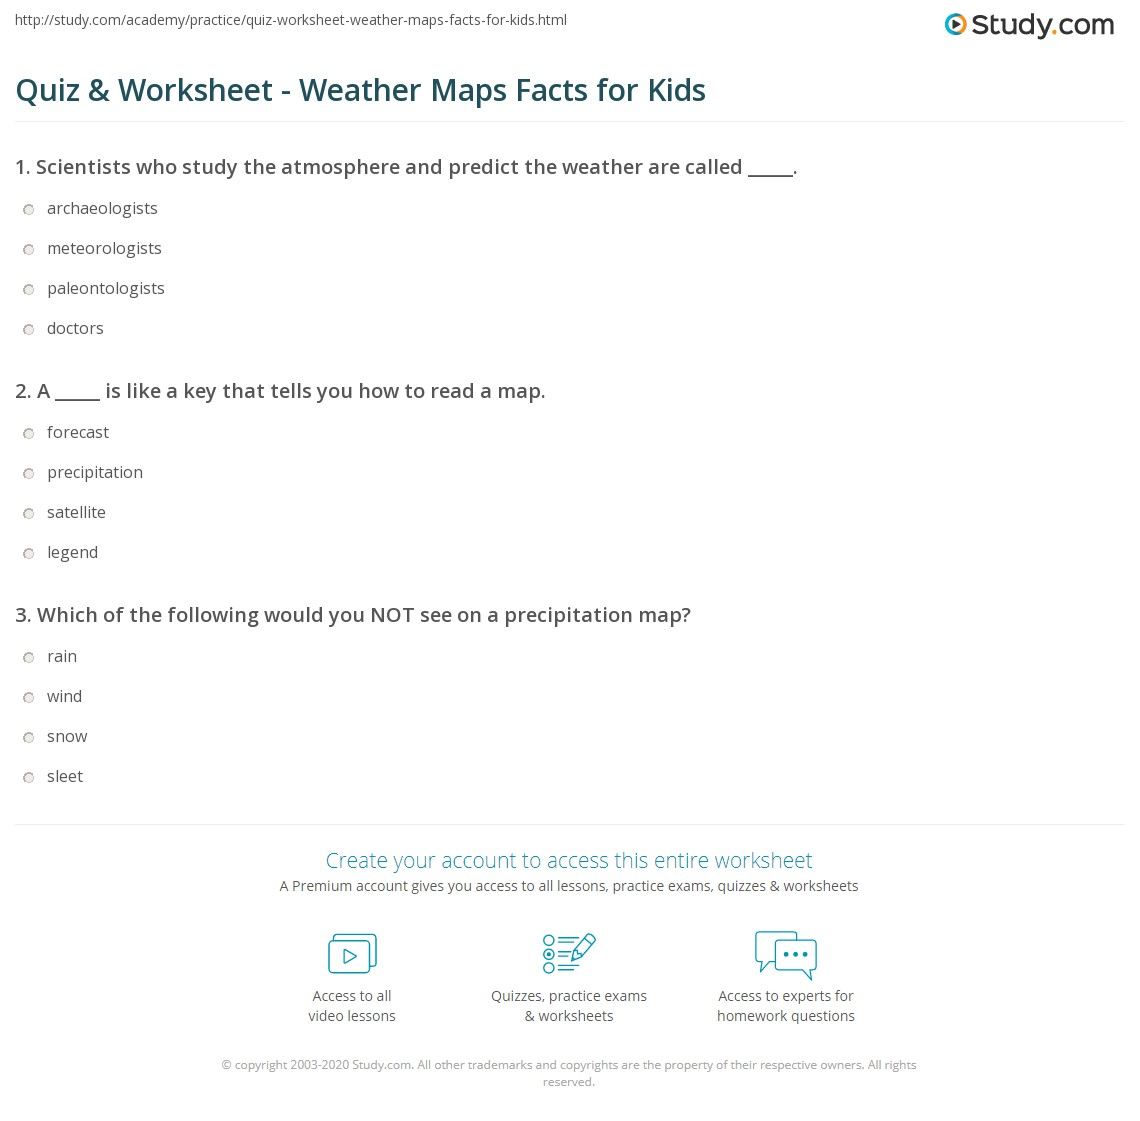 Quiz & Worksheet - Weather Maps Facts for Kids | Study.com Kids Weather Map on forecast map, geologic map, messenger map, flight map, pressure map, monsoon map, city map, climate map, biome map, land use map, temperature map, global warming map, drought map, ohio river valley map, storm map, history map, live wallpaper map, traffic map, wind map, precipitation map,